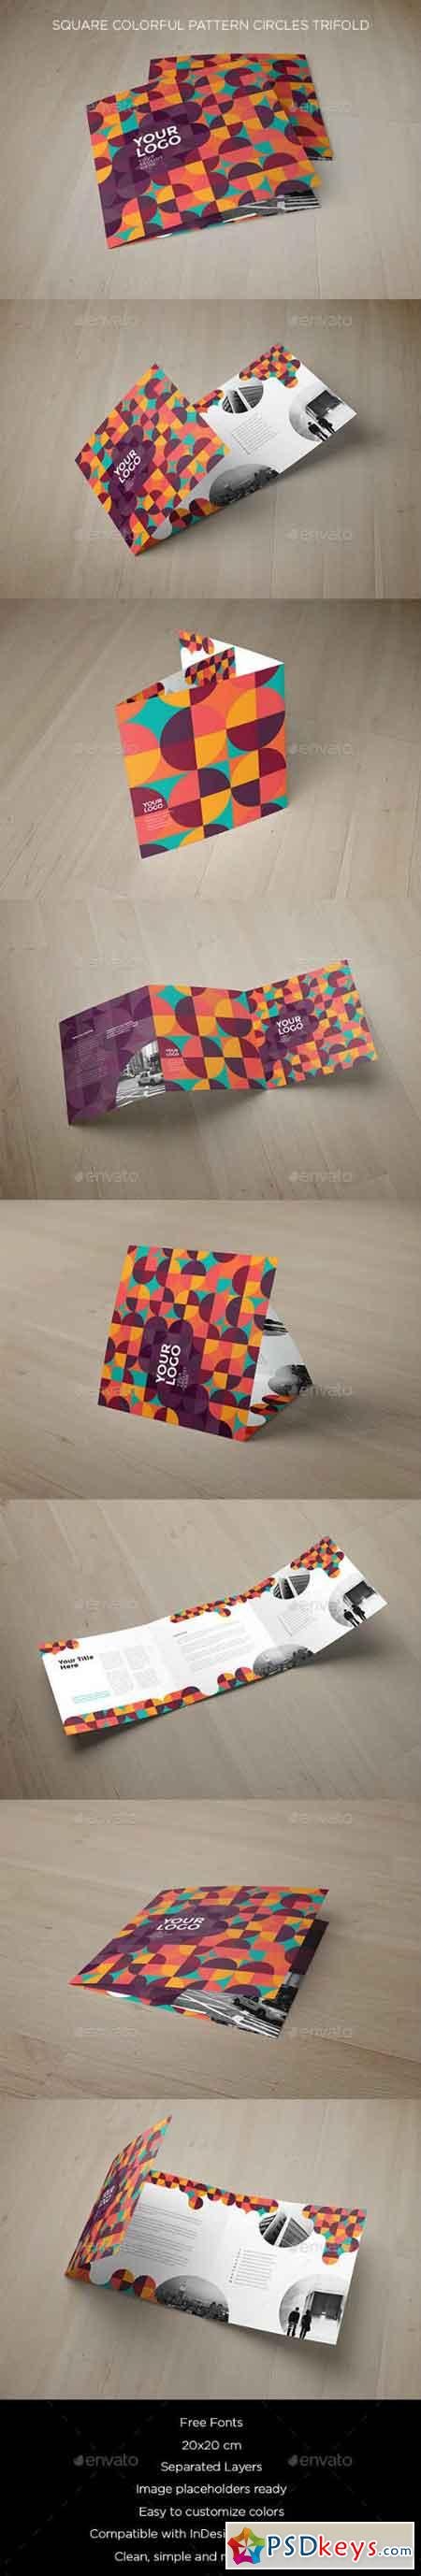 Square Colorful Pattern Circles Trifold 16547554